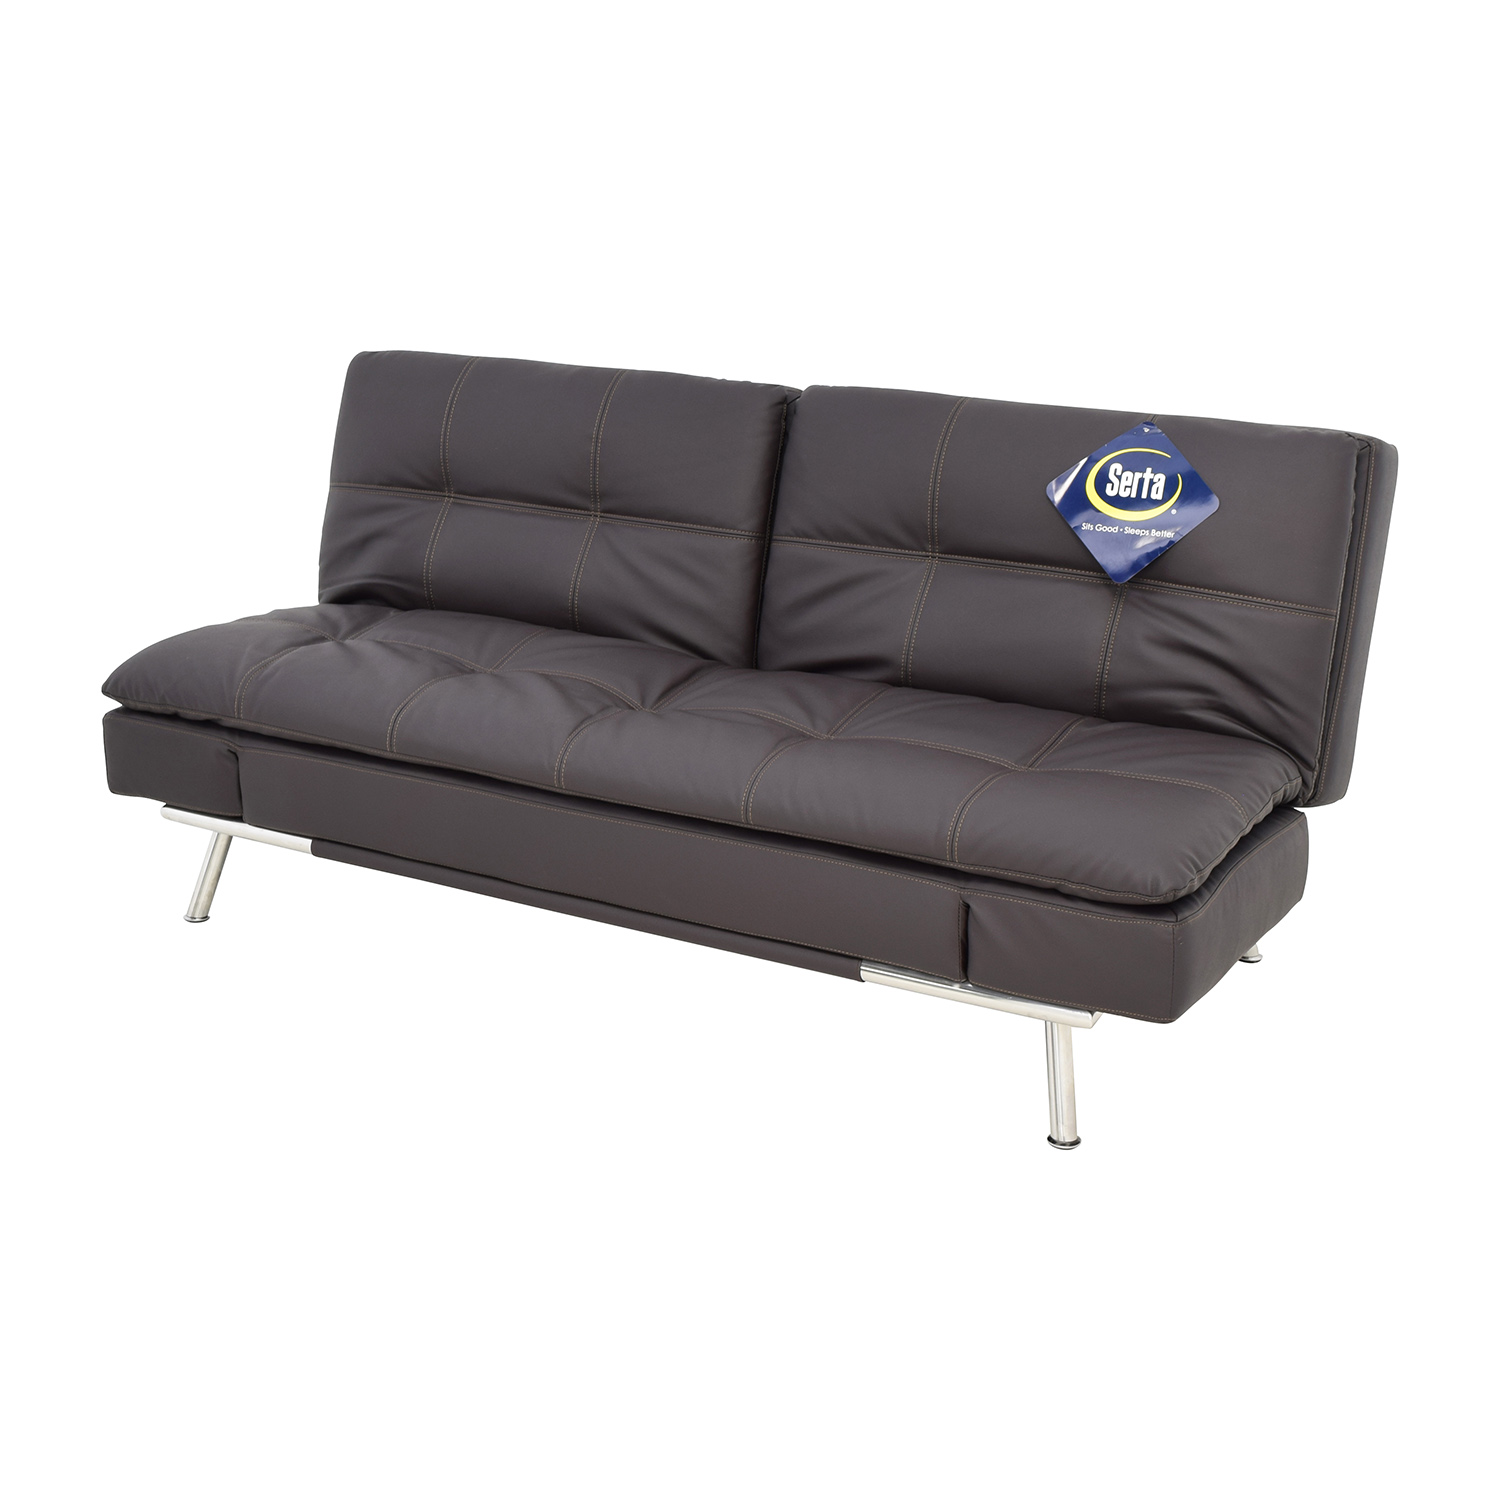 ... Shop Lifestyle Solutions Serta Matrix Leather Sleeper Sofa Lifestyle  Solutions Serta Sofas ...